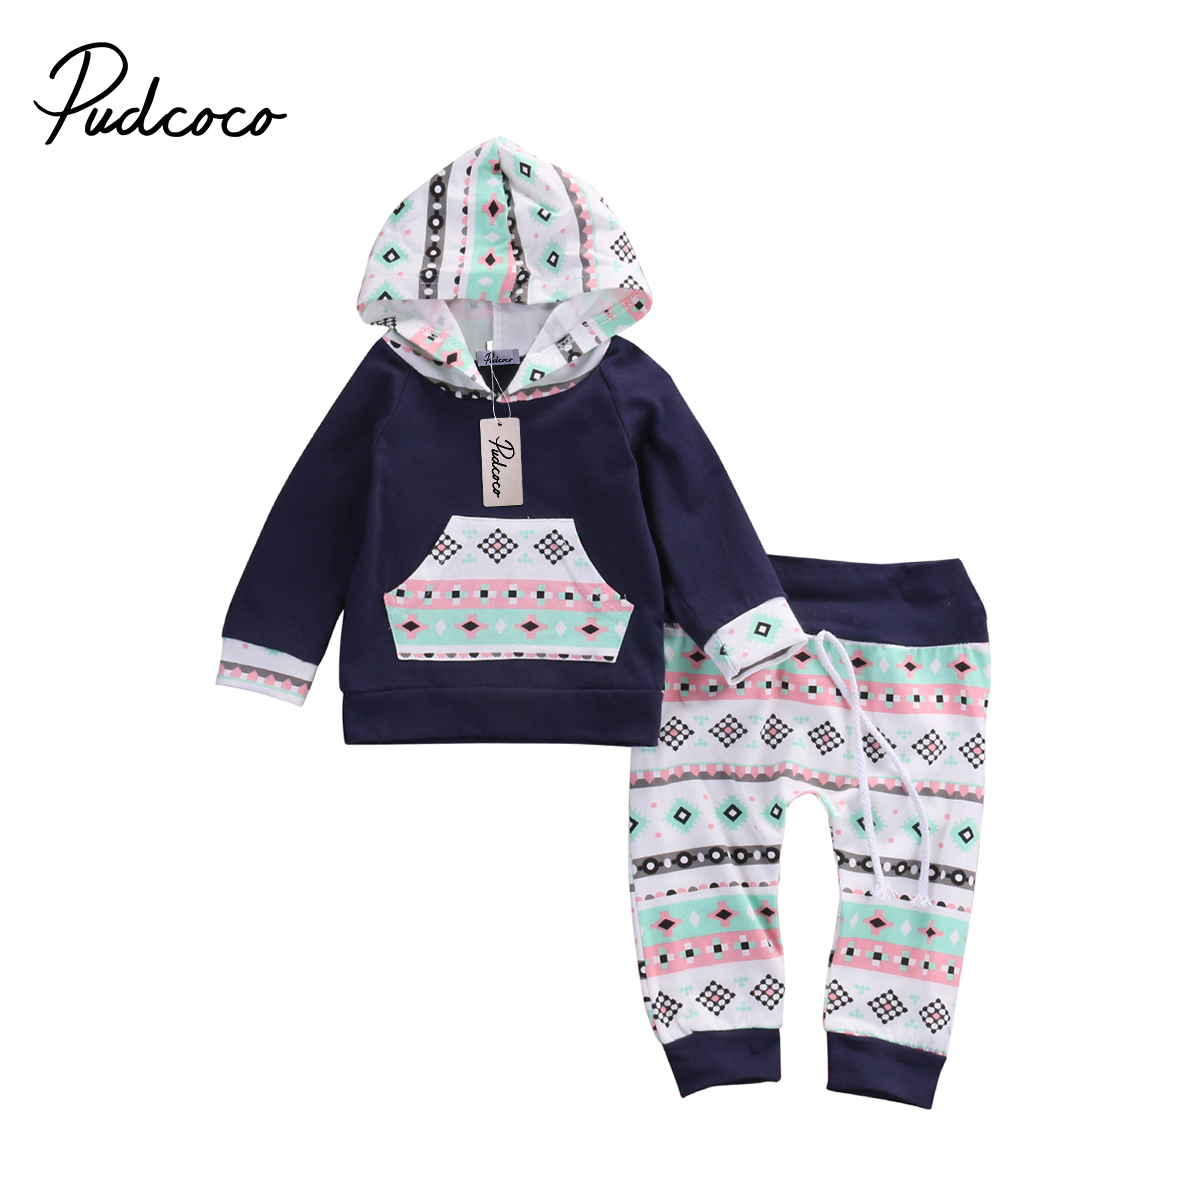 Pudcoco Newborn Toddler Baby Boy Girls Clothes Long Sleeve Hoodie Hoodies +Pants Outfits Set 0-18 Months Helen115